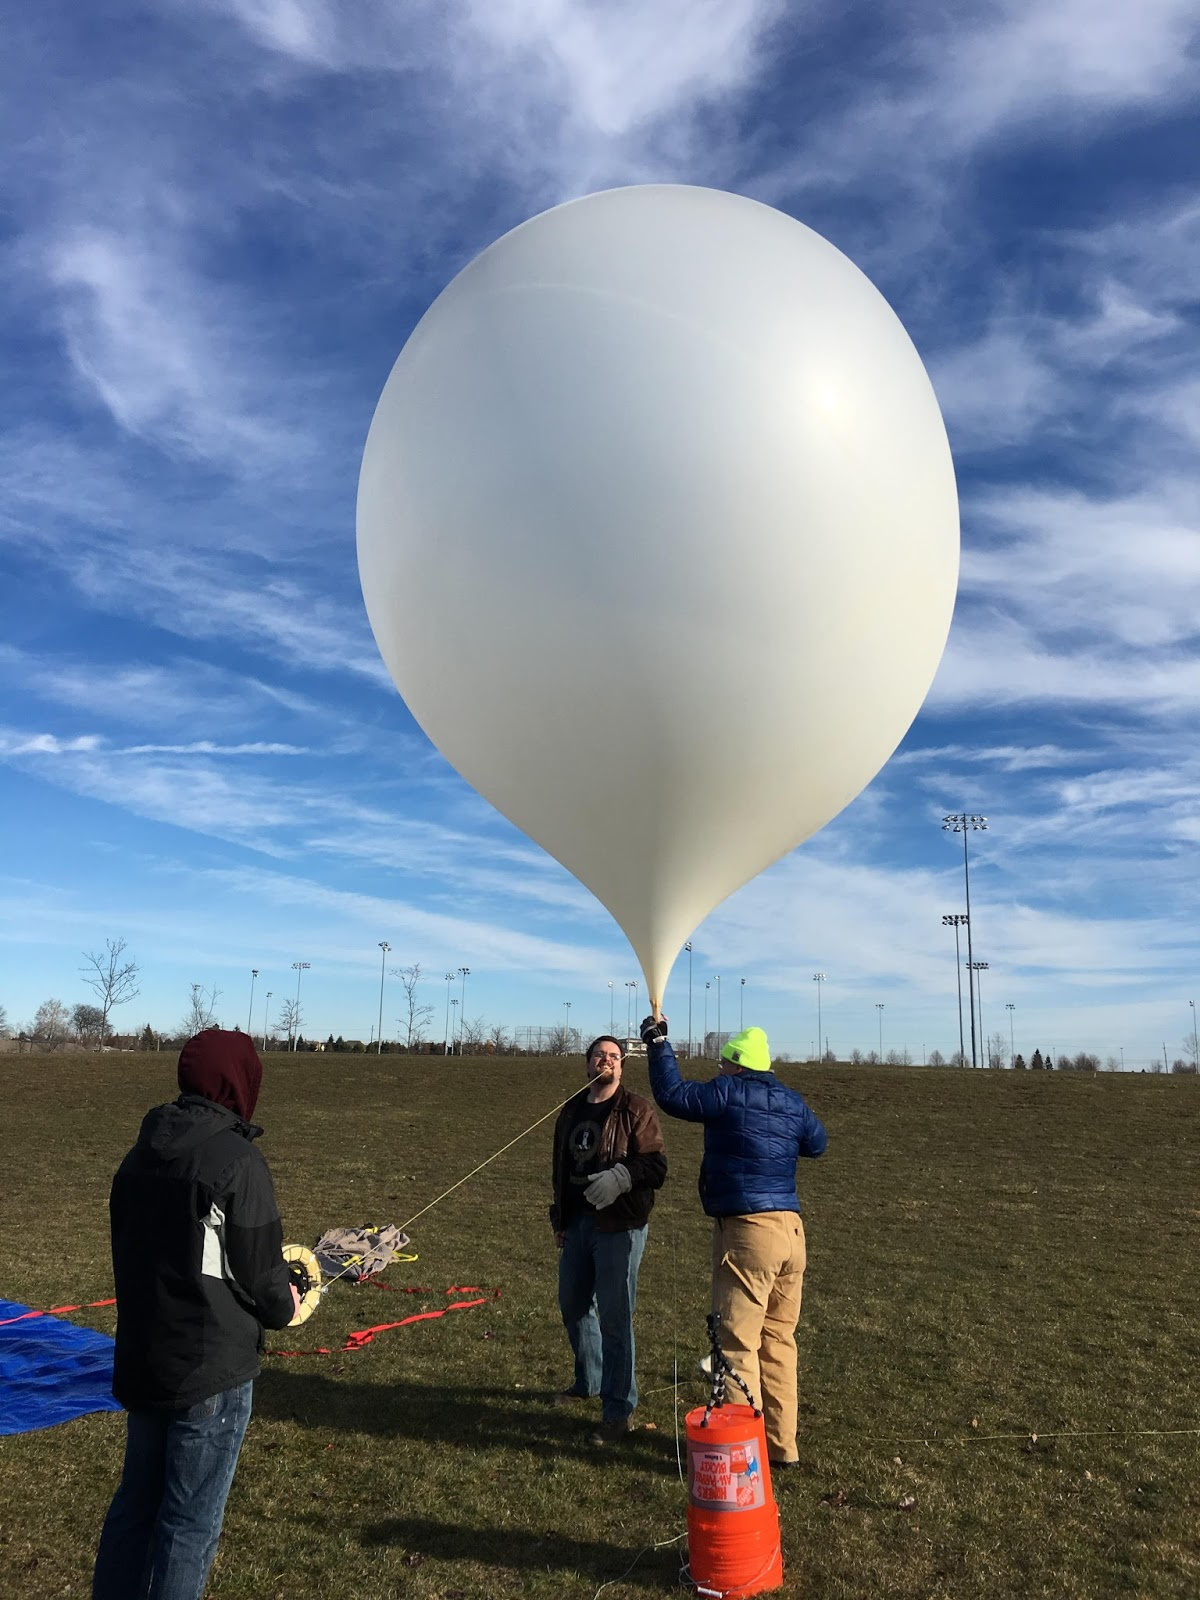 1200 gram balloon inflated with about 13,000 liters / 460 cubic feet of helium during the first HAPP test flight